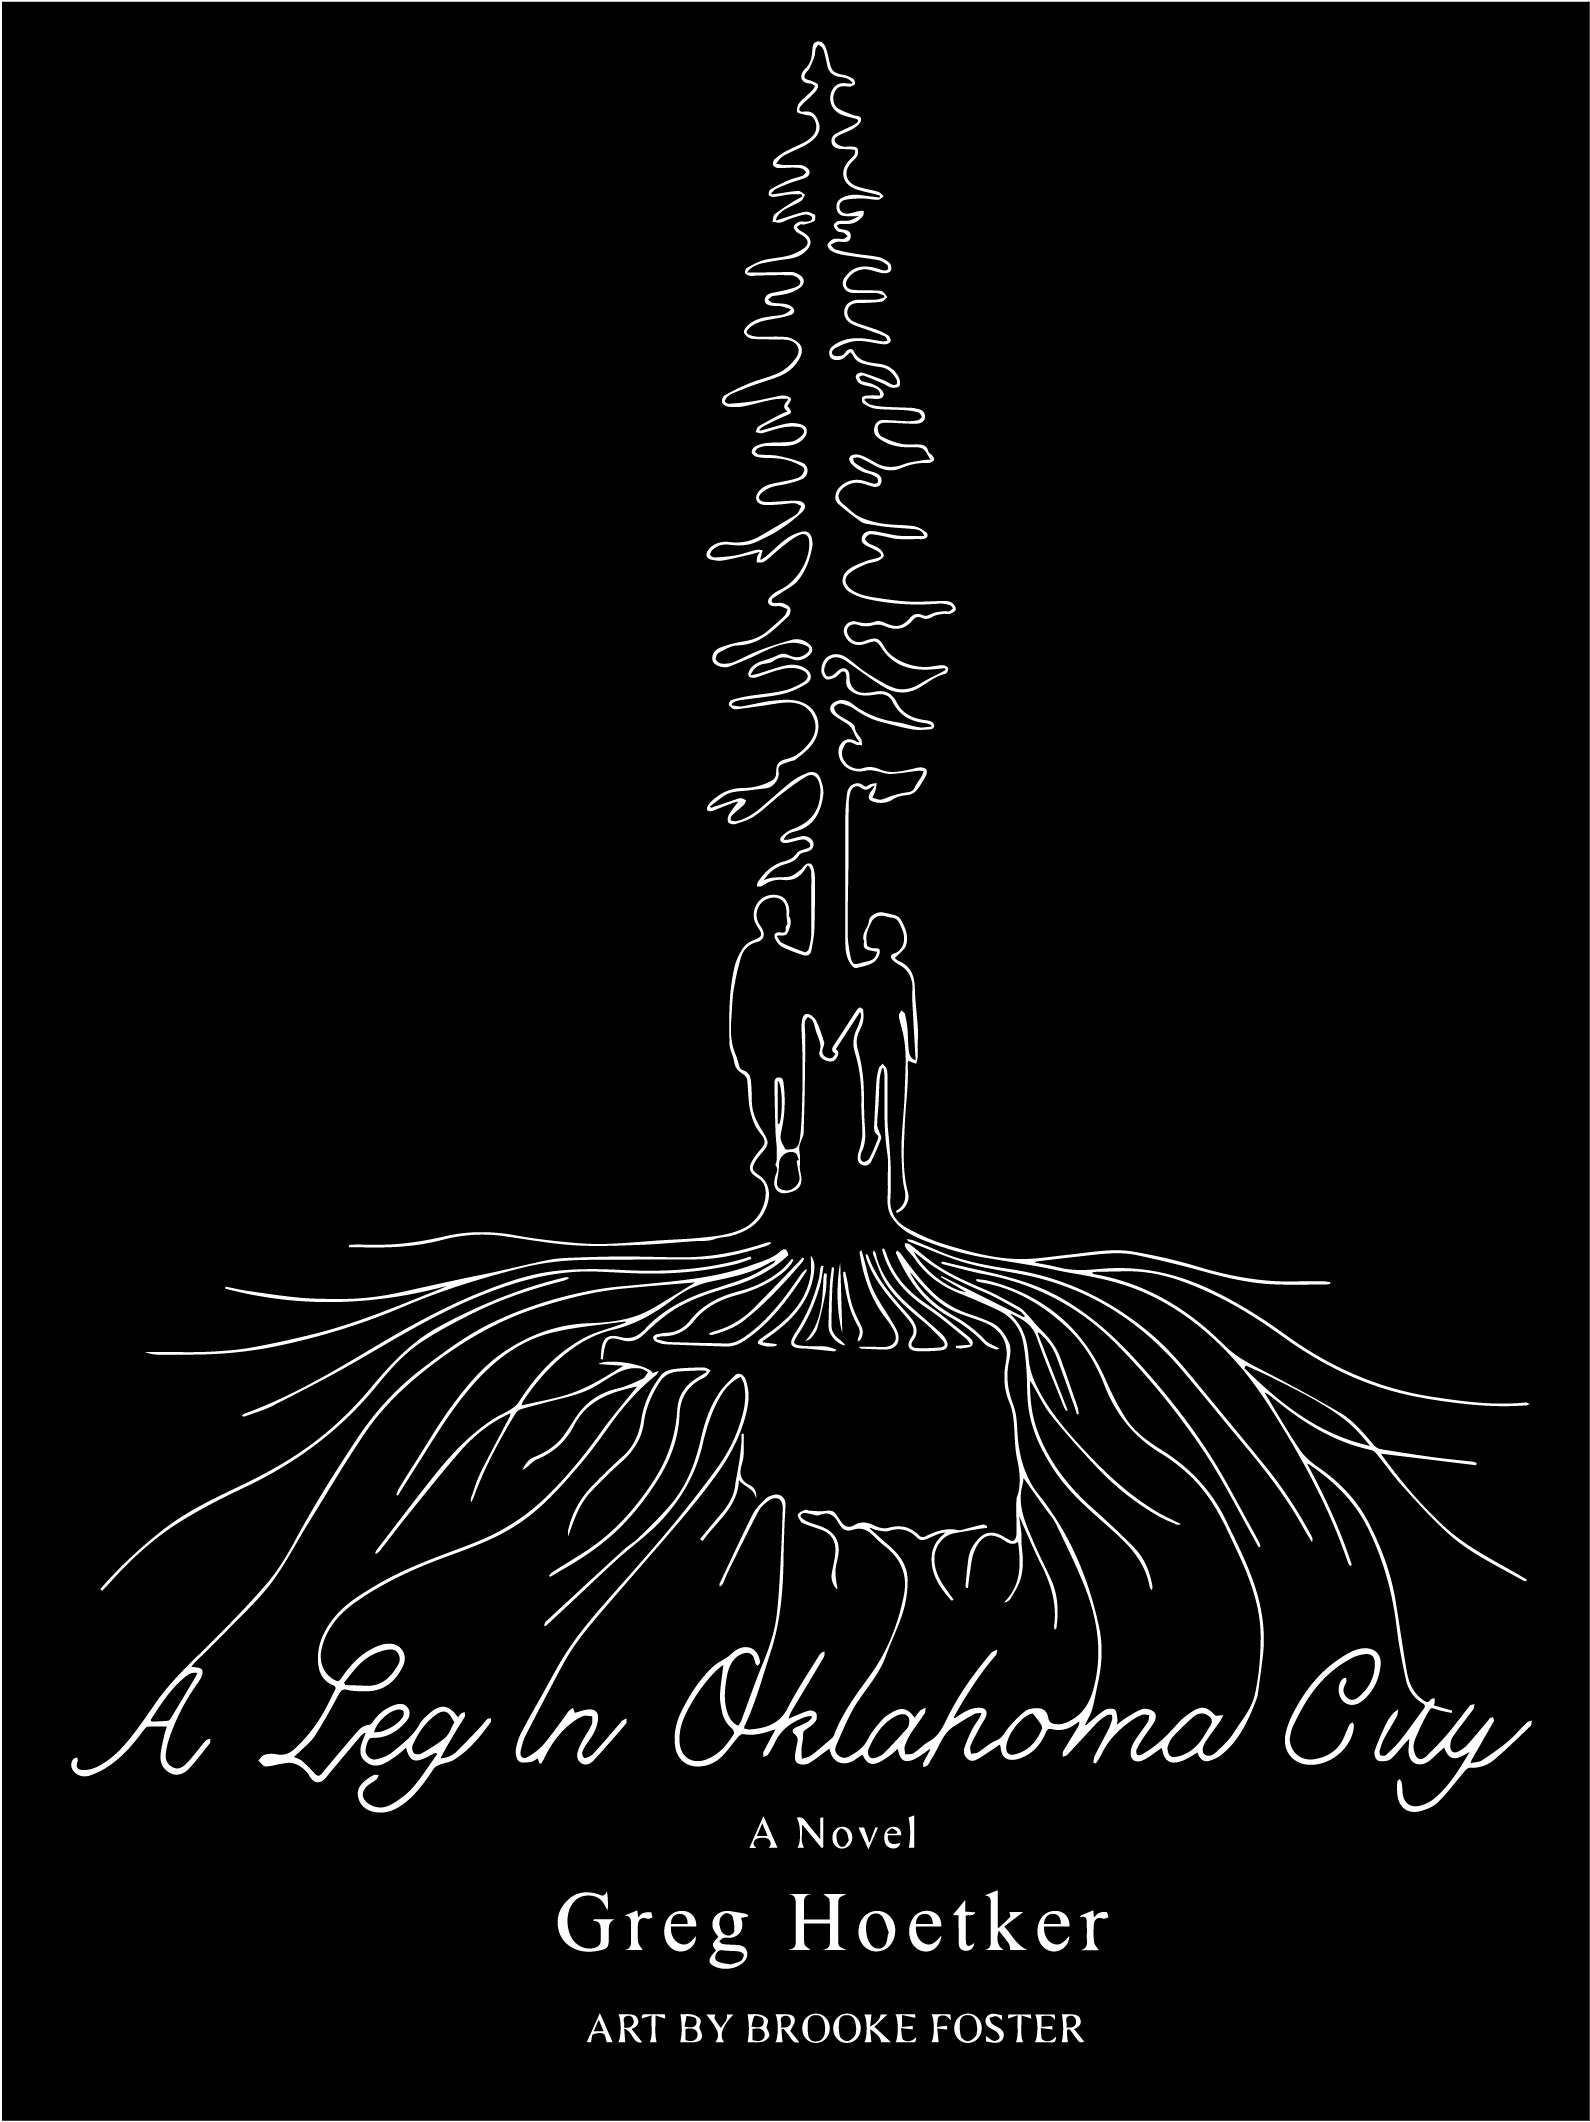 A Leg in Oklahoma City